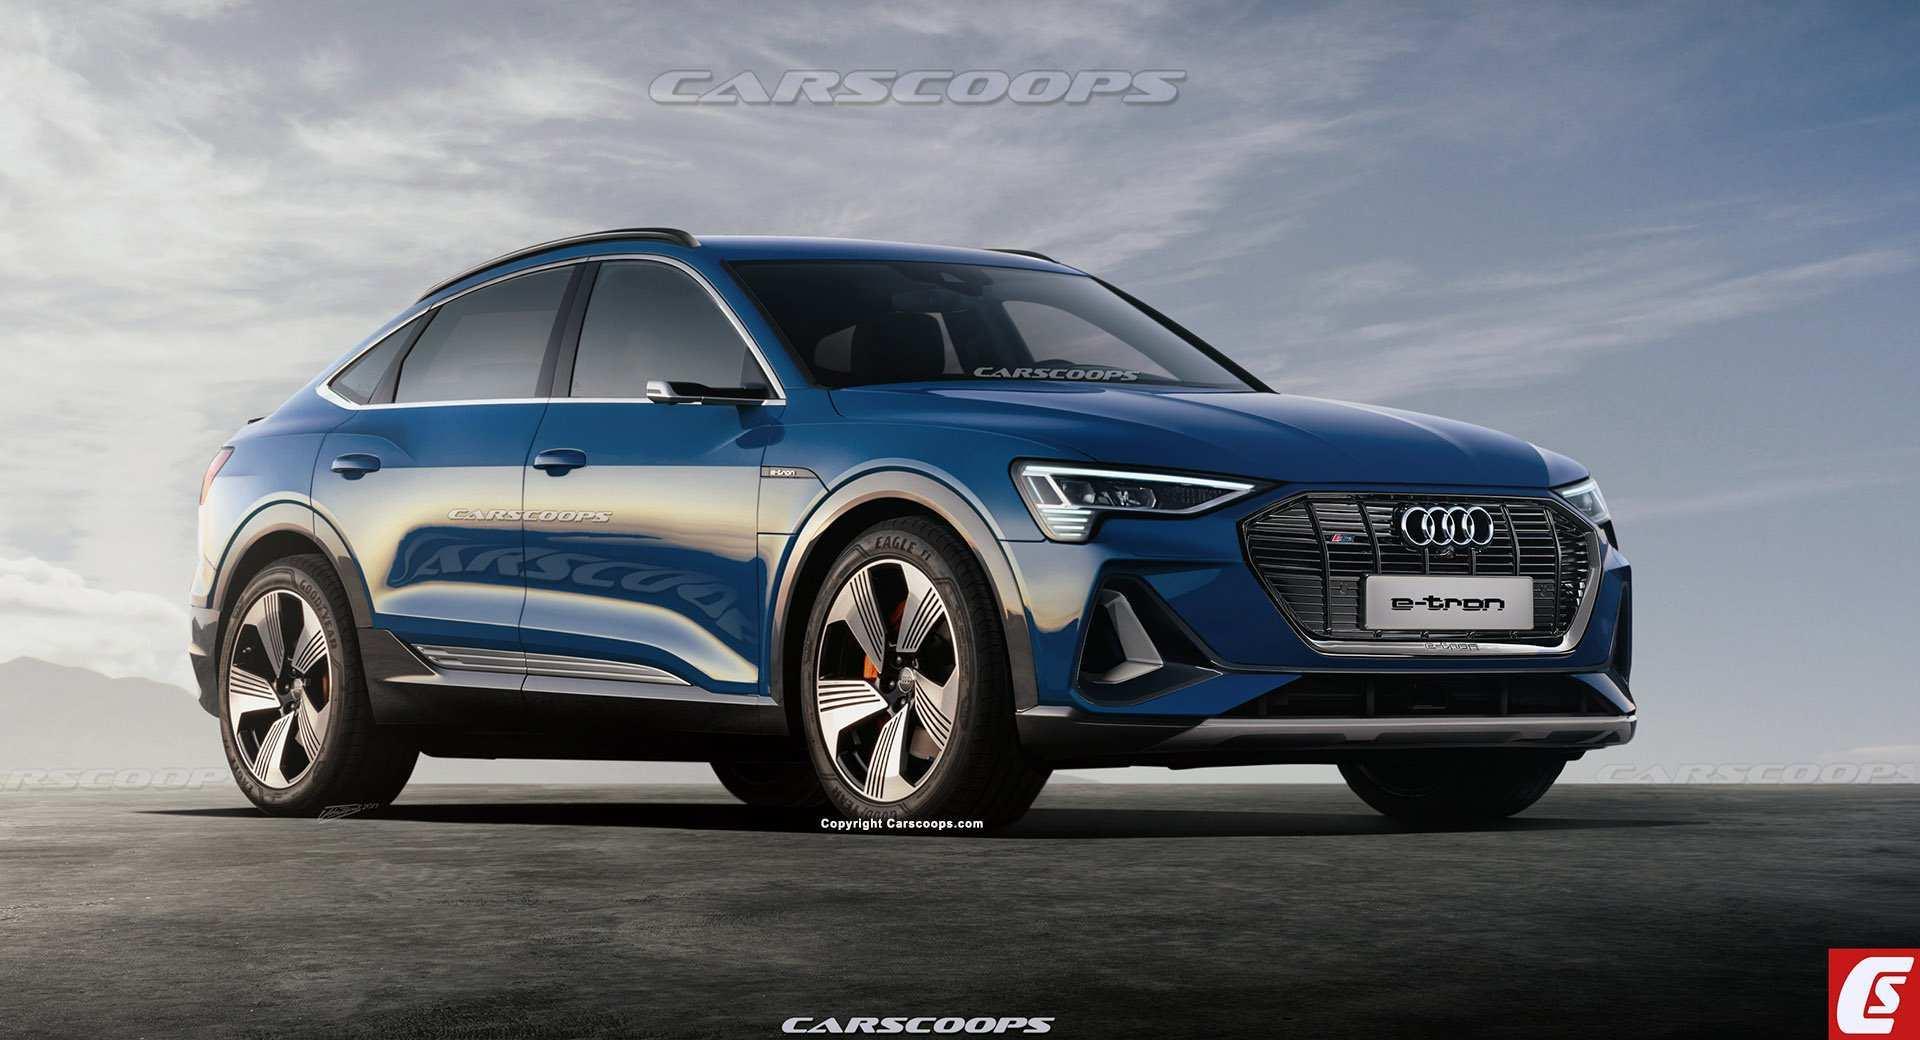 39 All New Audi Hybrid Cars 2020 Price by Audi Hybrid Cars 2020